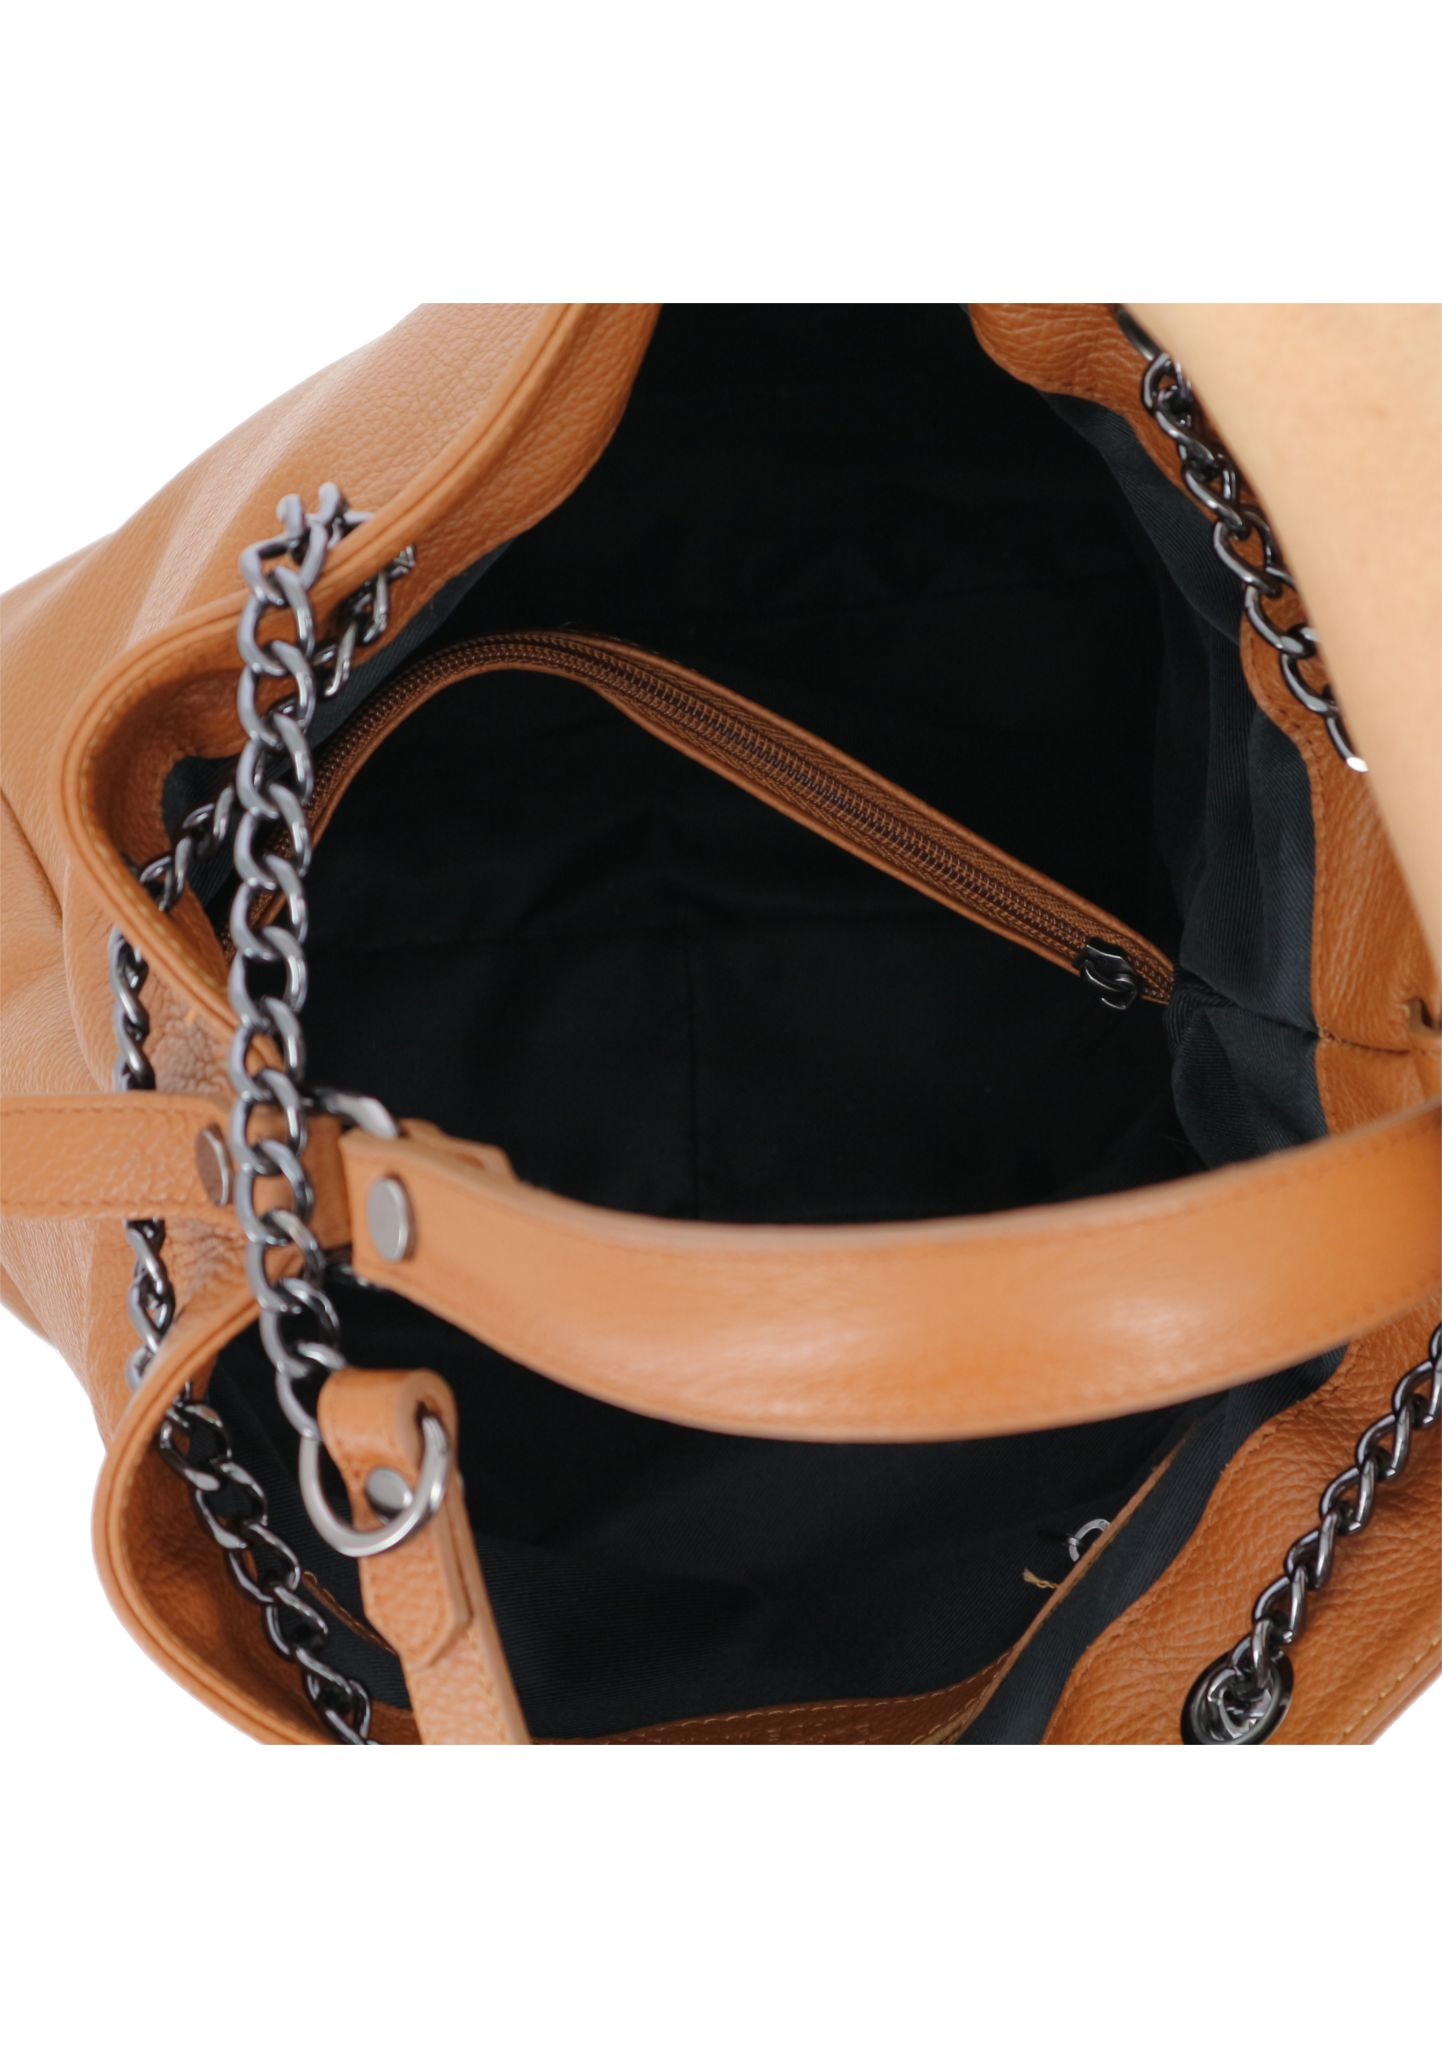 Cognac Shoulder Bag With Chain Strap 033 detail 6